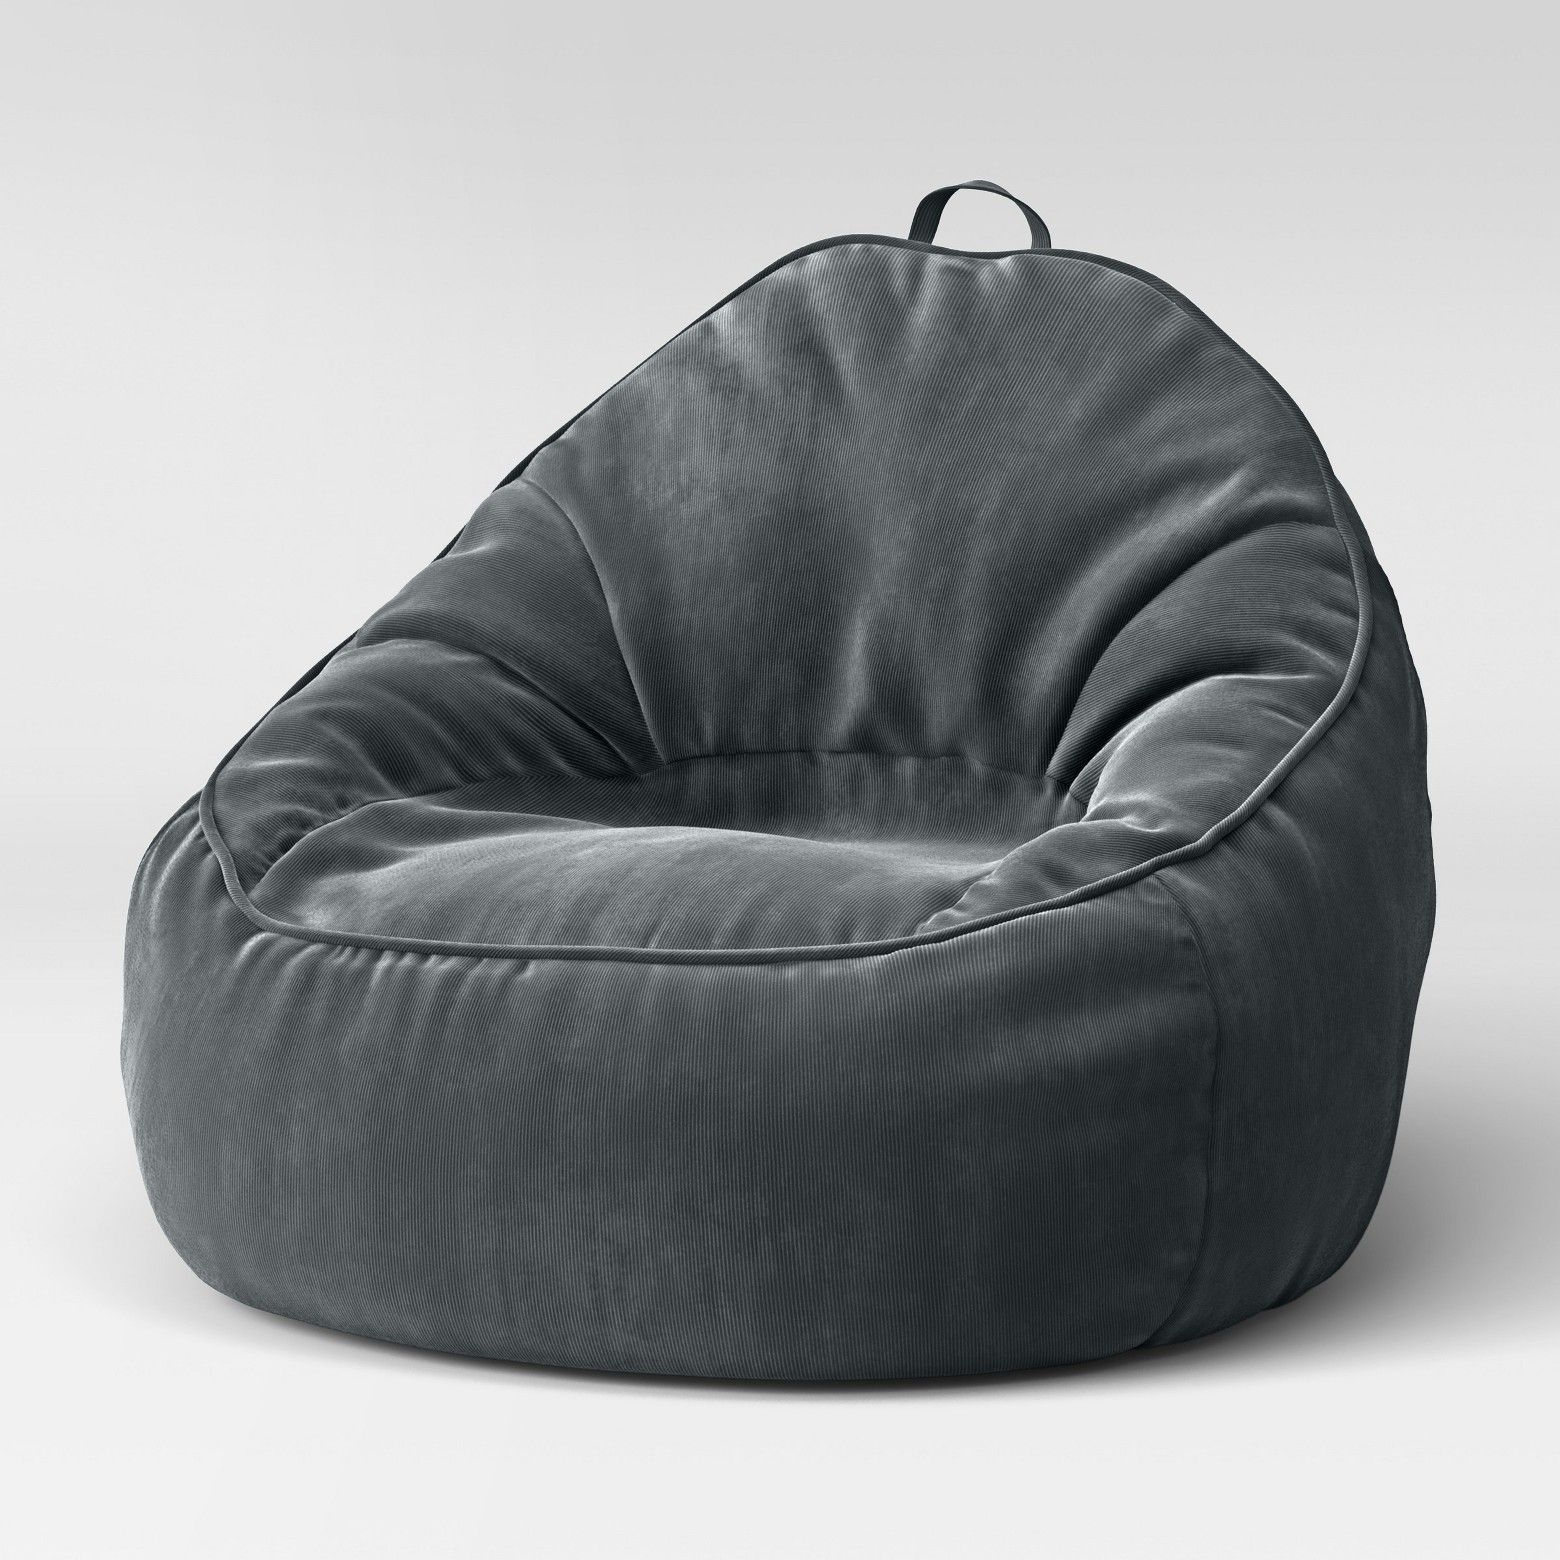 Cool If Youre Looking For A Structured Bean Bag Chair For Your Beatyapartments Chair Design Images Beatyapartmentscom